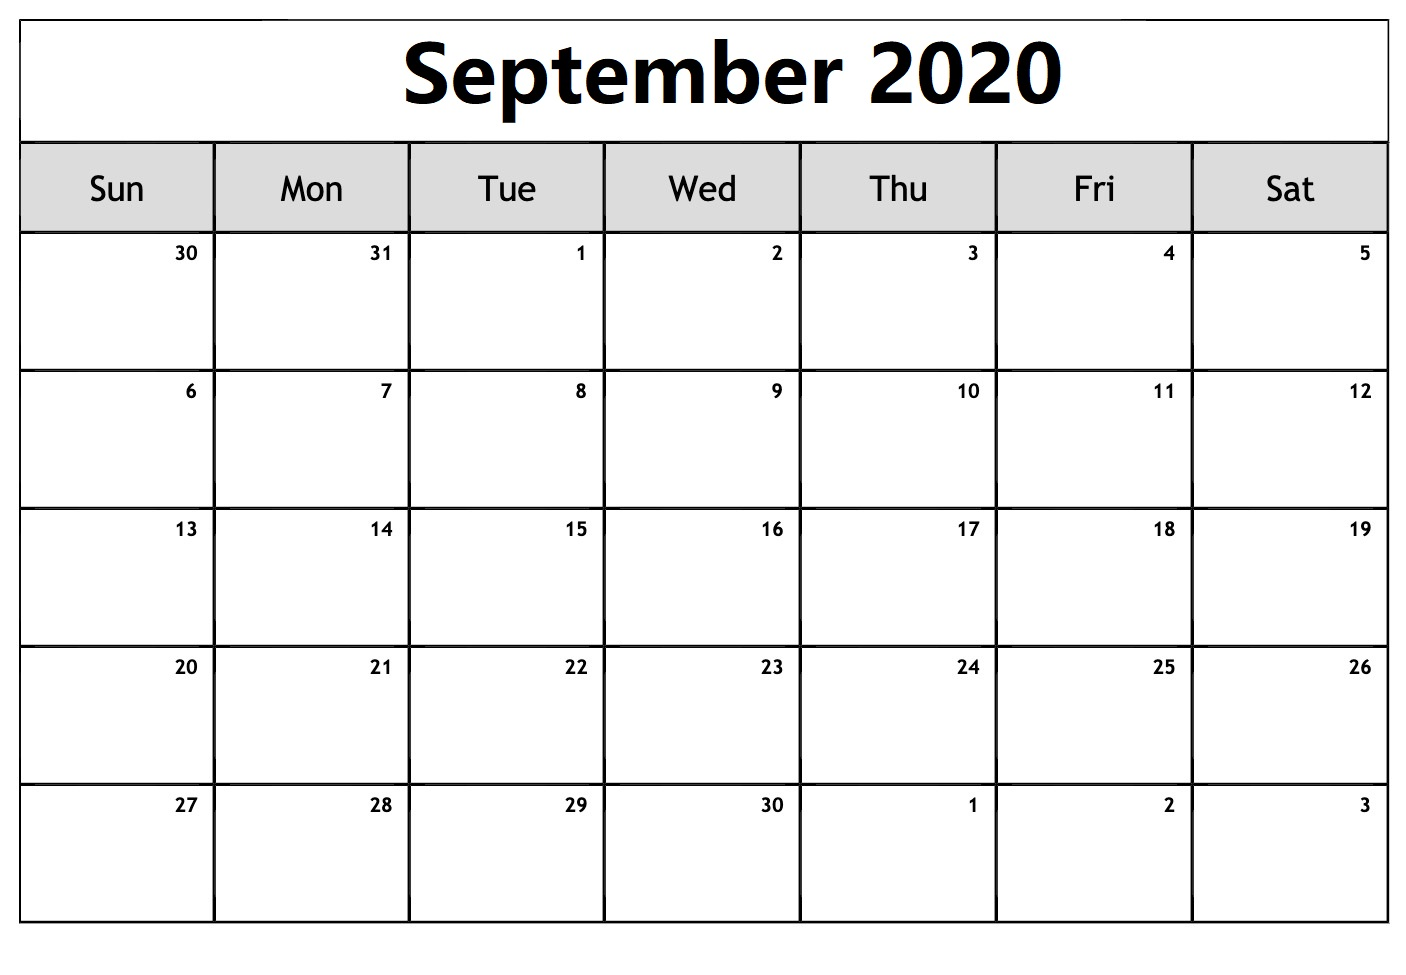 September 2020 Calendar With Holidays USA